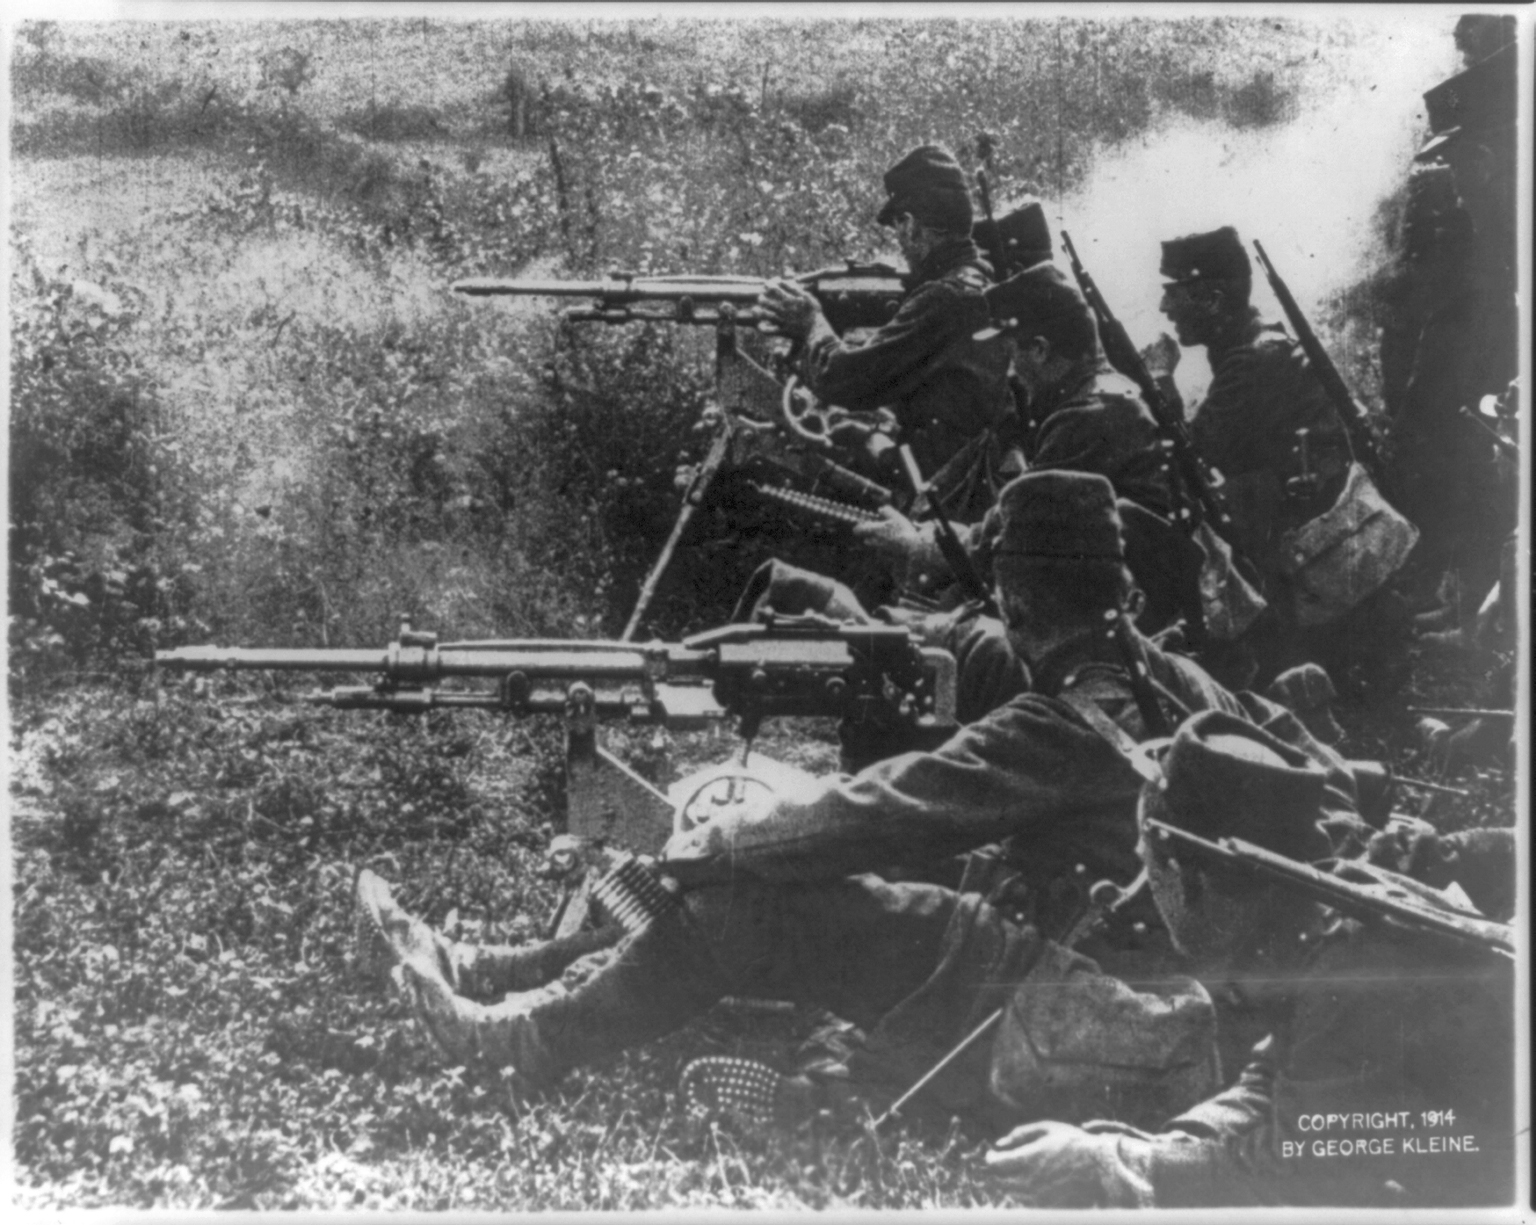 the role of machine guns in the first world war essay Sweeping maneuvers exposed the cavalry and infantry to the killing power of modern weapons modern weapons, especially artillery and machine guns as well as accurate rapid-fire rifles proved devastating, especially when used against the tactics field commanders employed in the initial phases of the war.